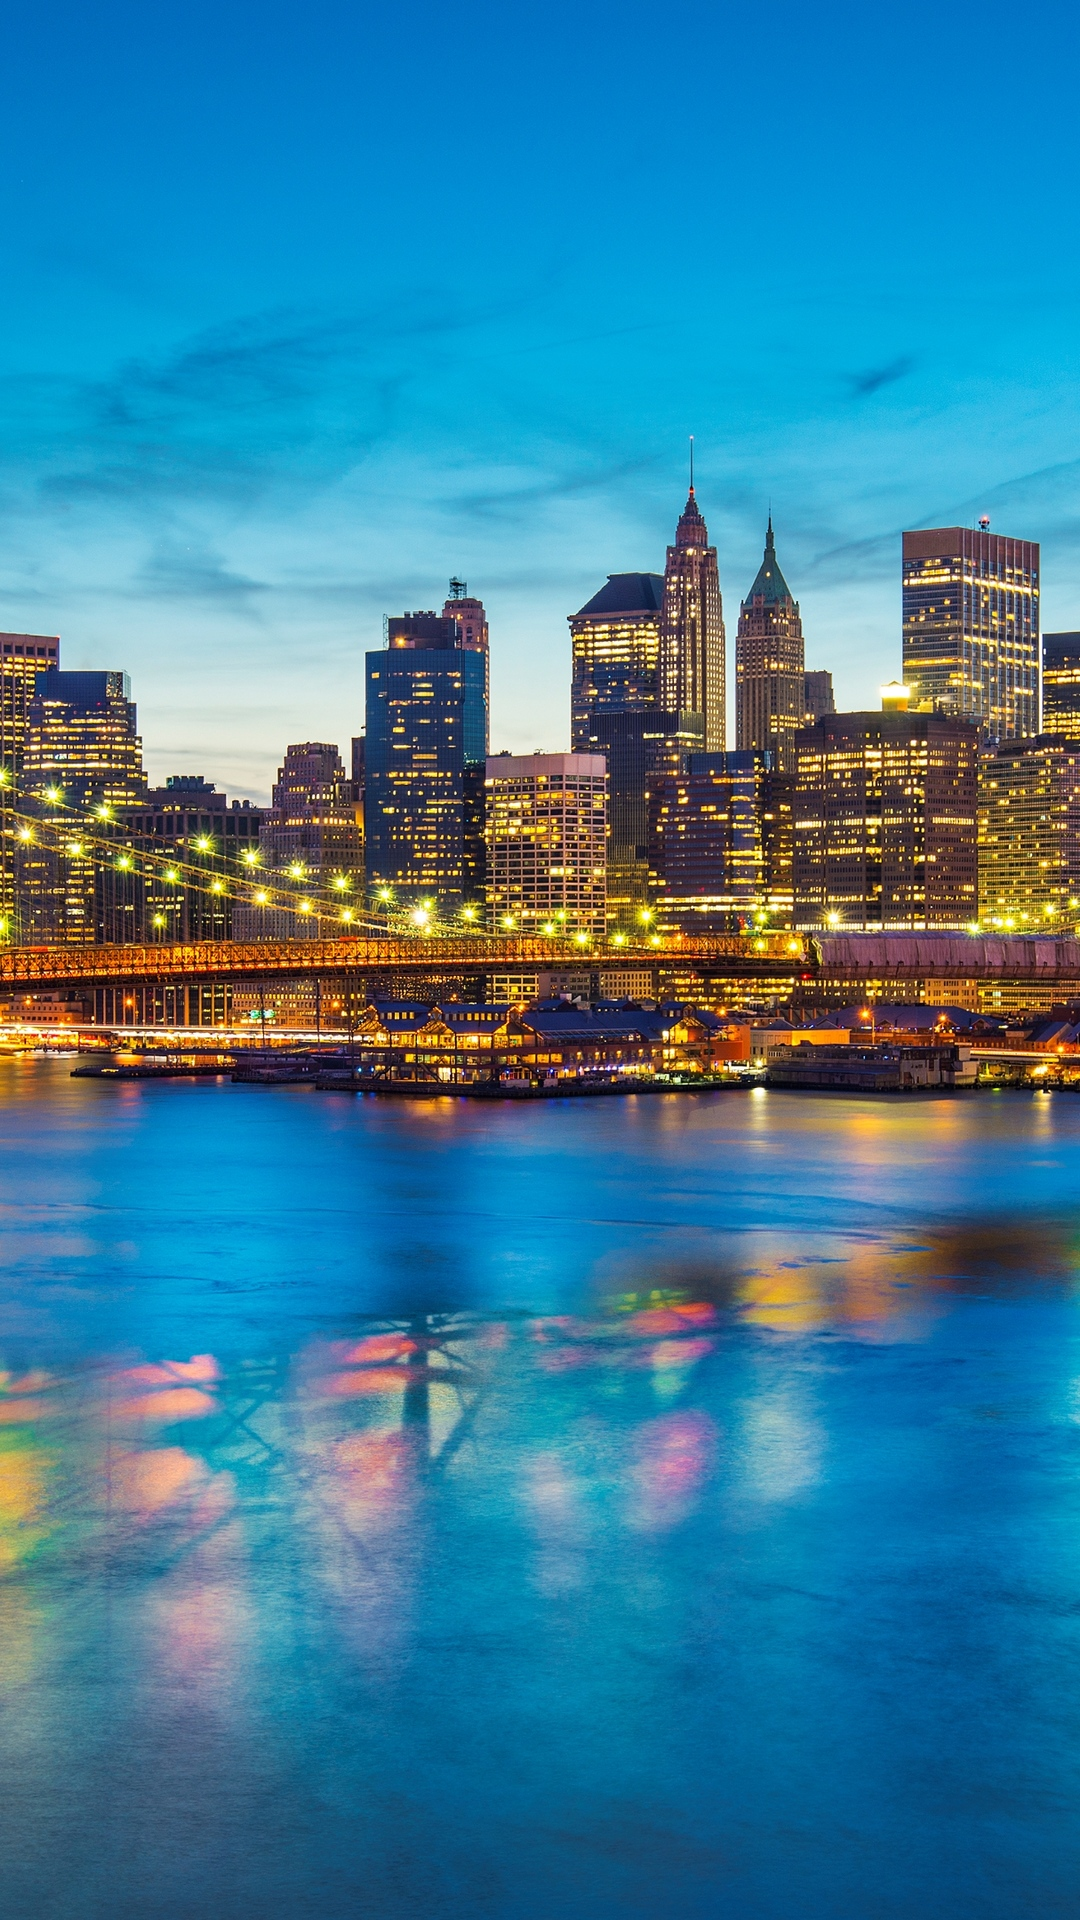 New York City Wallpaper 4K - WallpaperSafari